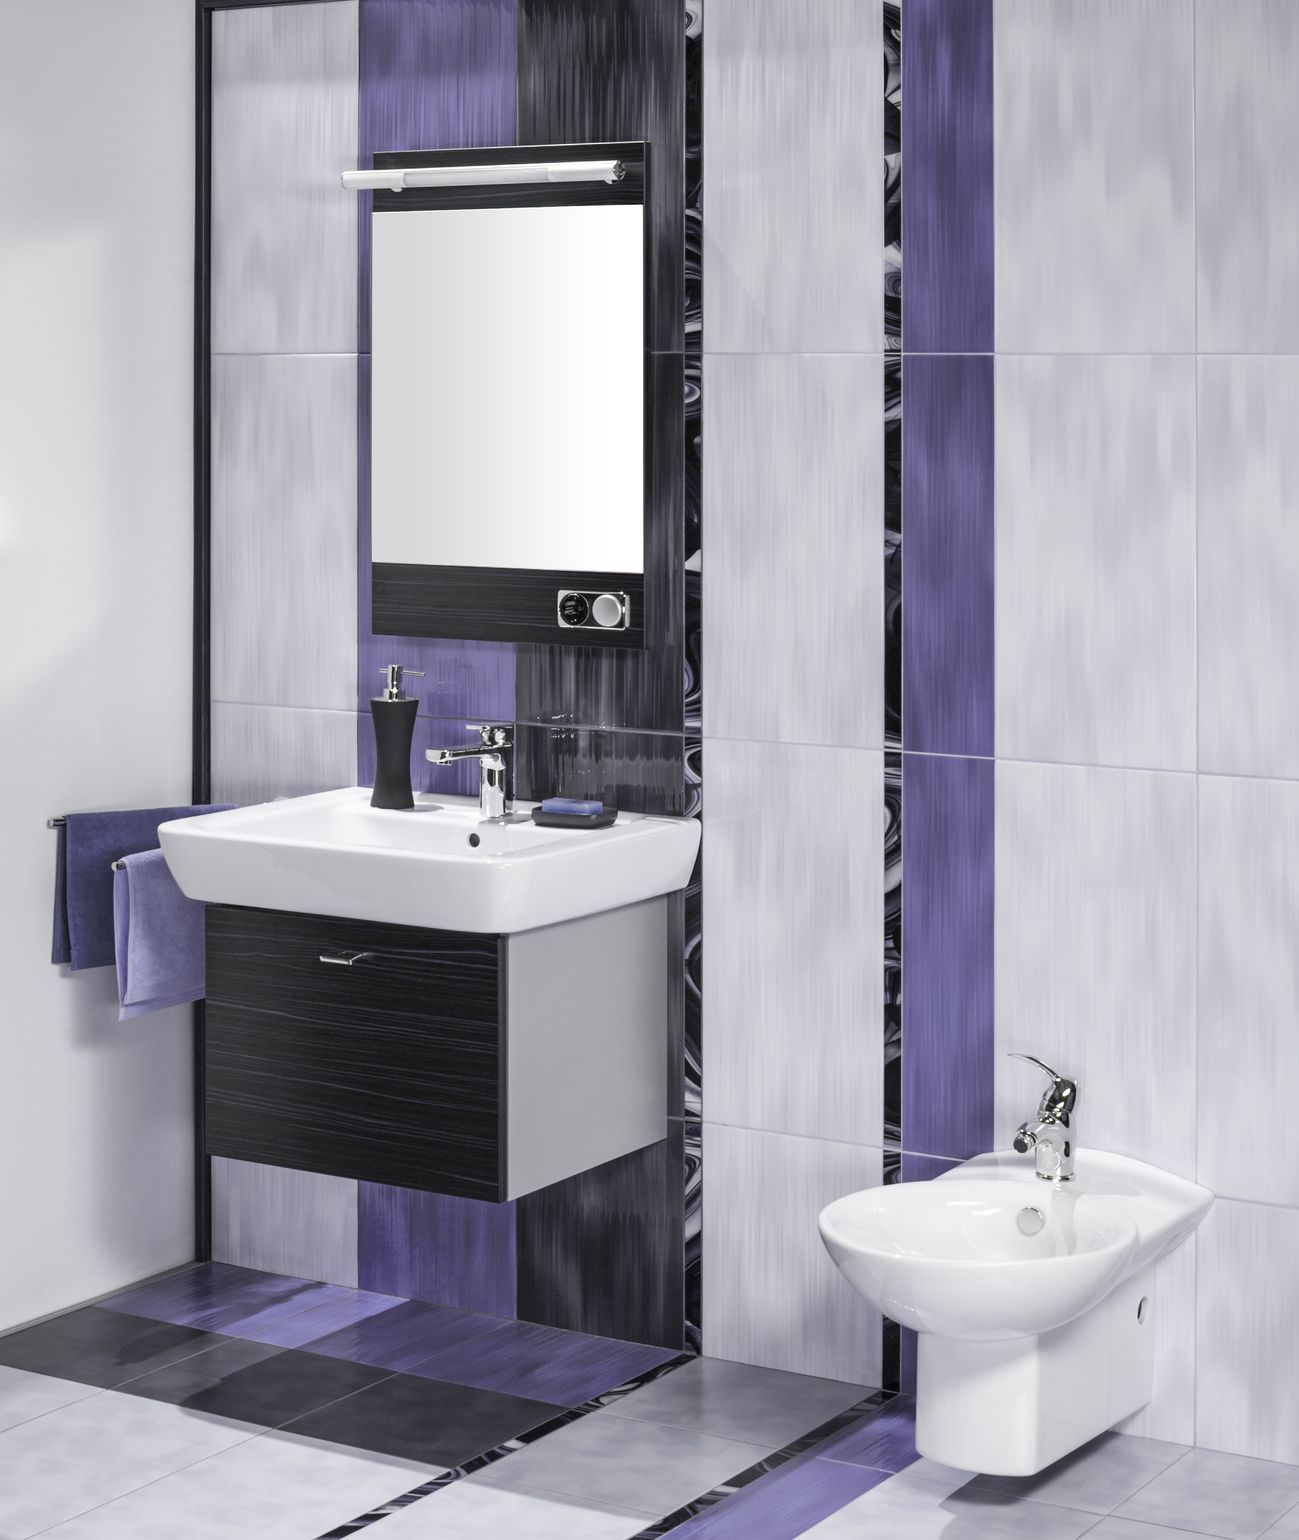 detail of an elegant bathroom interior with miror and sink with accessories